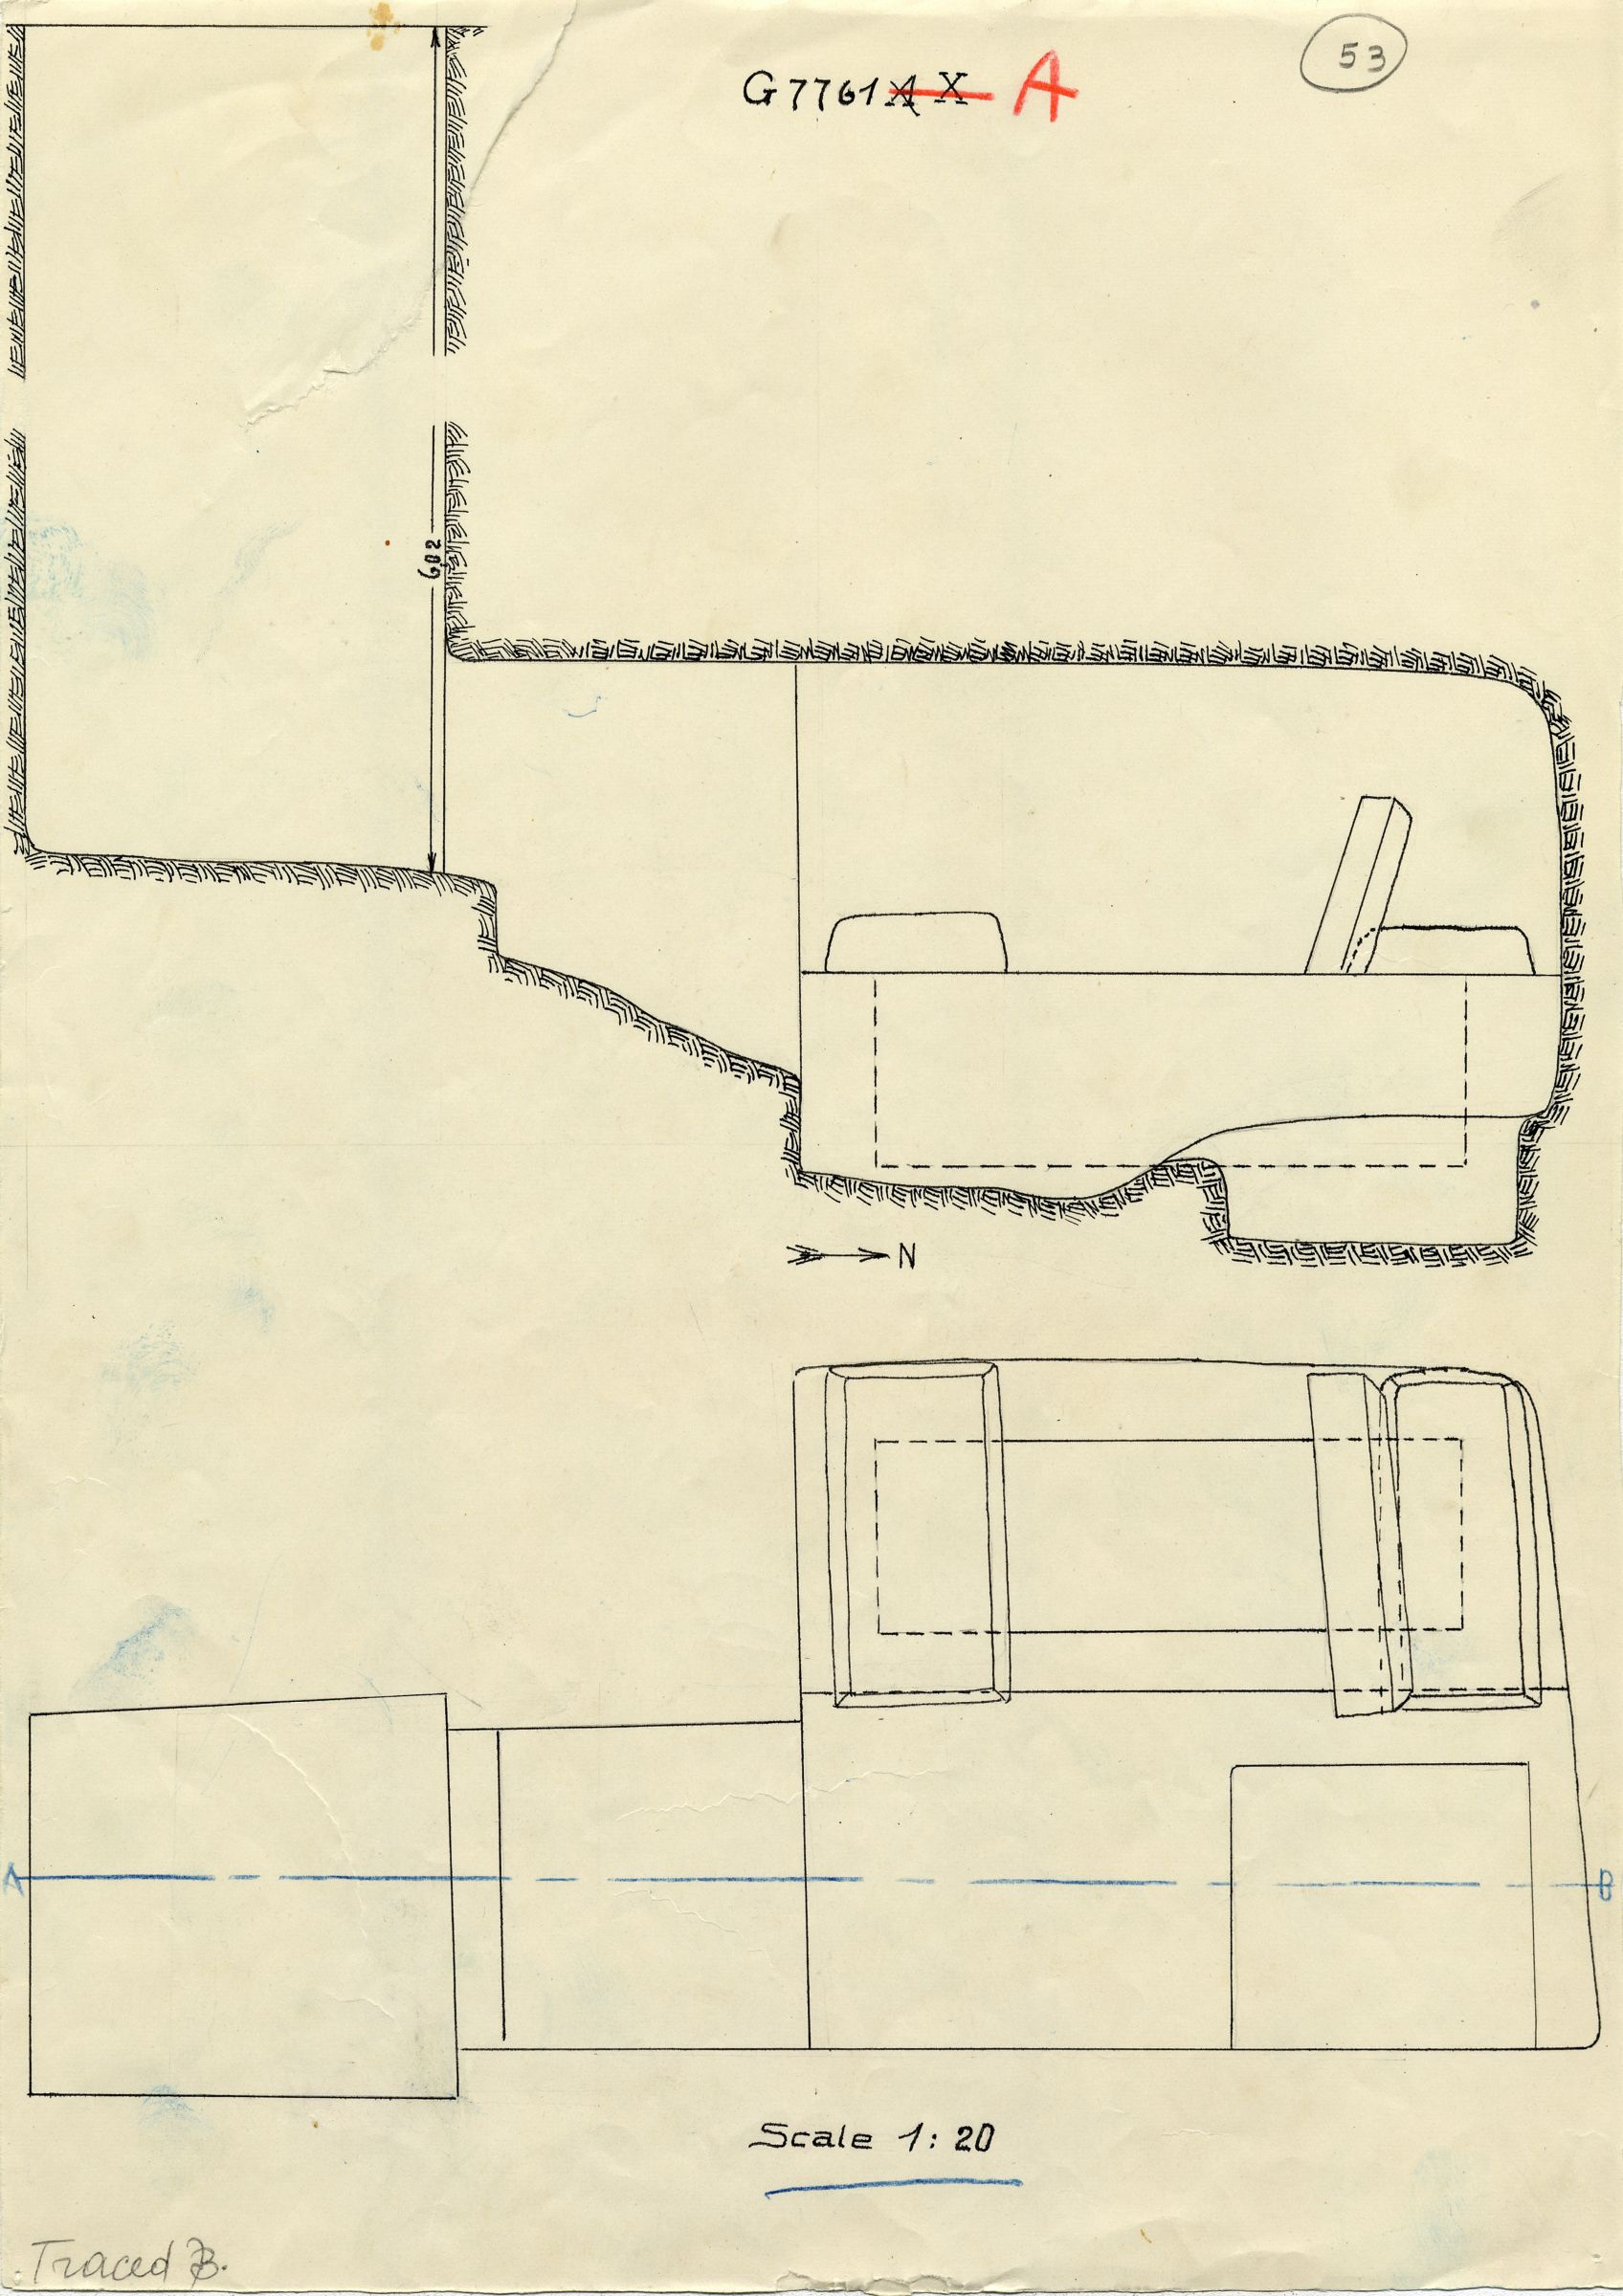 Maps and plans: G 7761, Shaft A